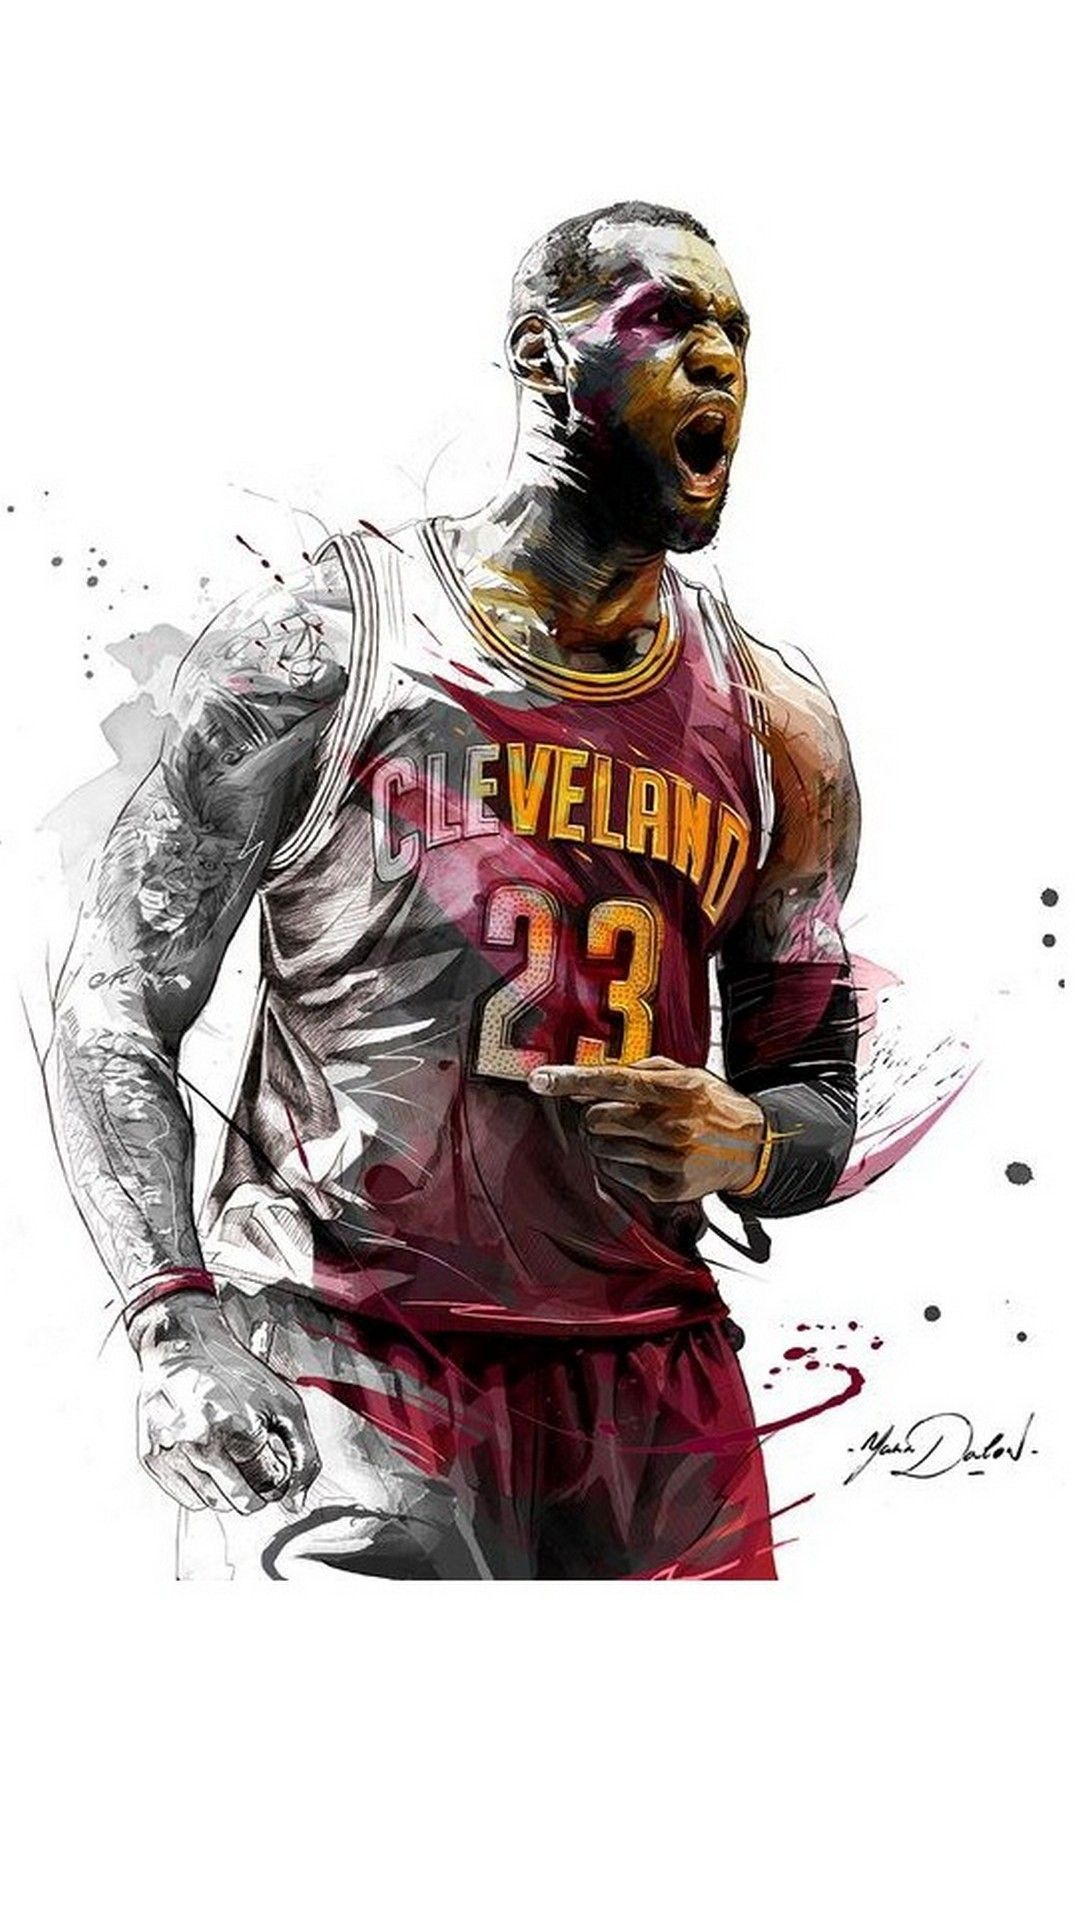 Great 9 Nba Wallpaper Iphone For Your Android Or Iphone Wallpapers Android Iphone Wallpaper Lebron James Wallpapers Lebron James Background Lebron James